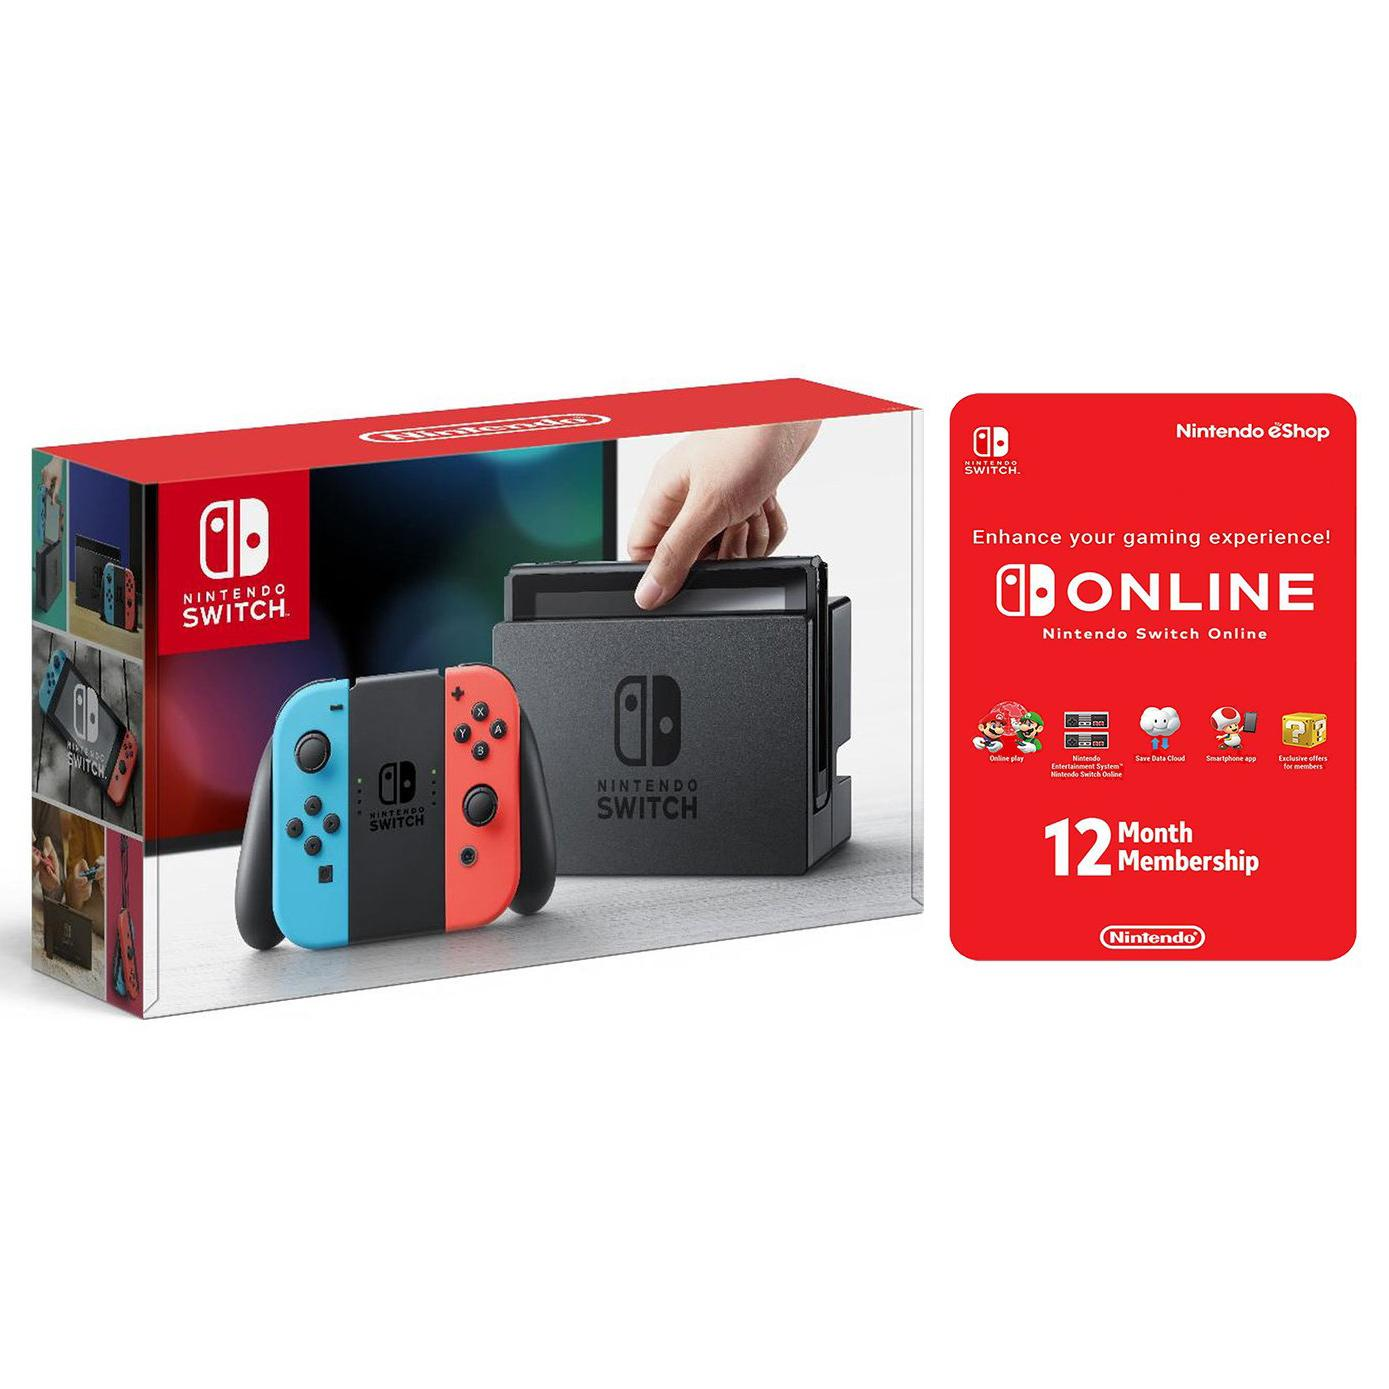 Nintendo Switch Gaming System with 12 Month Membership for $267.71 Shipped